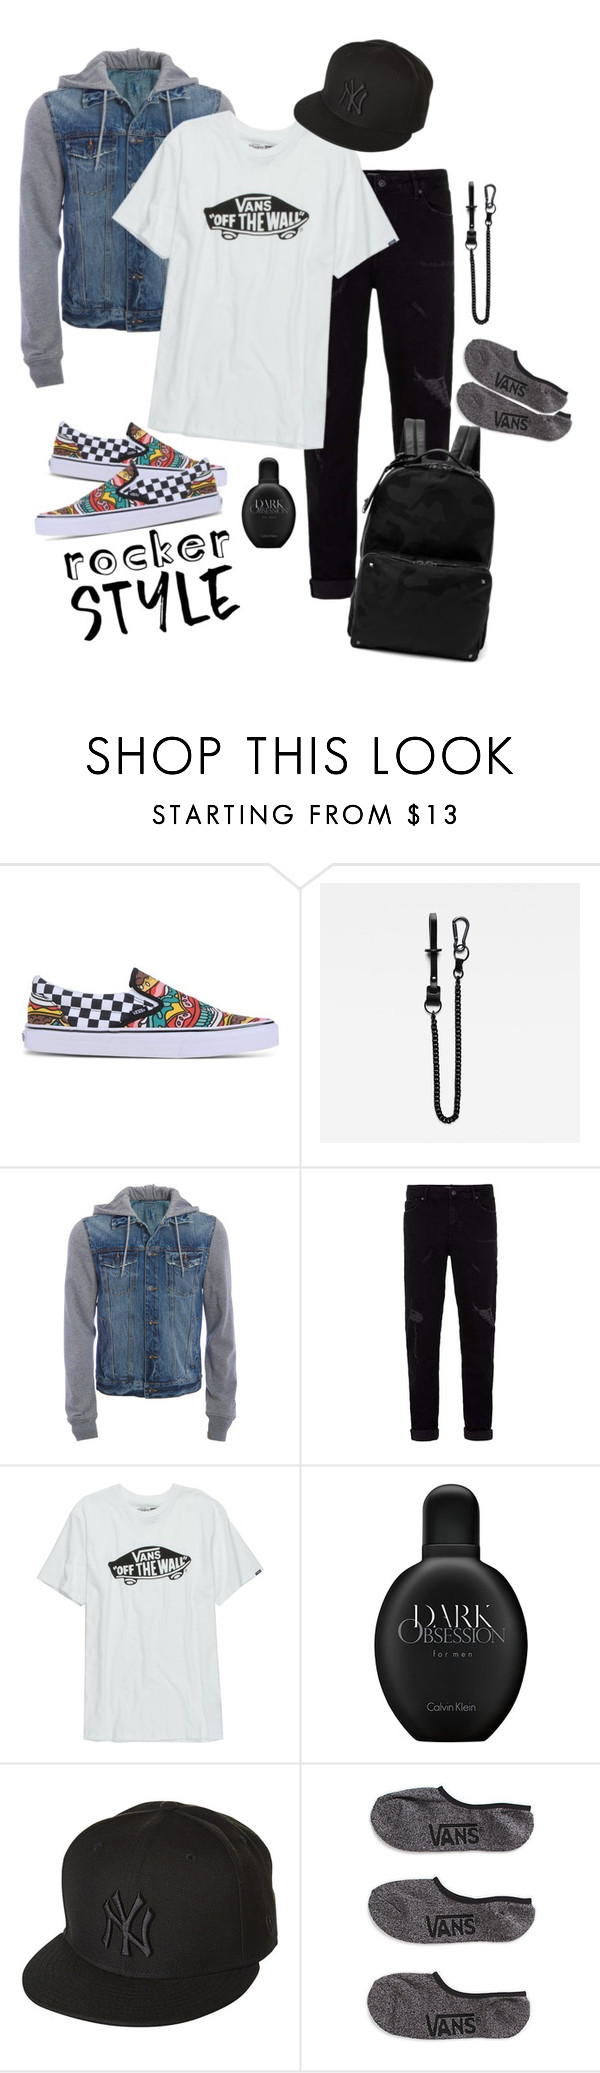 """Vans Warped Tour"" by sarahelizabethg ❤ liked on Polyvore featuring Vans, G-Star Raw, Aéropostale, Topman, Calvin Klein, New Era, Valentino, men's fashion, menswear and rockerchic"